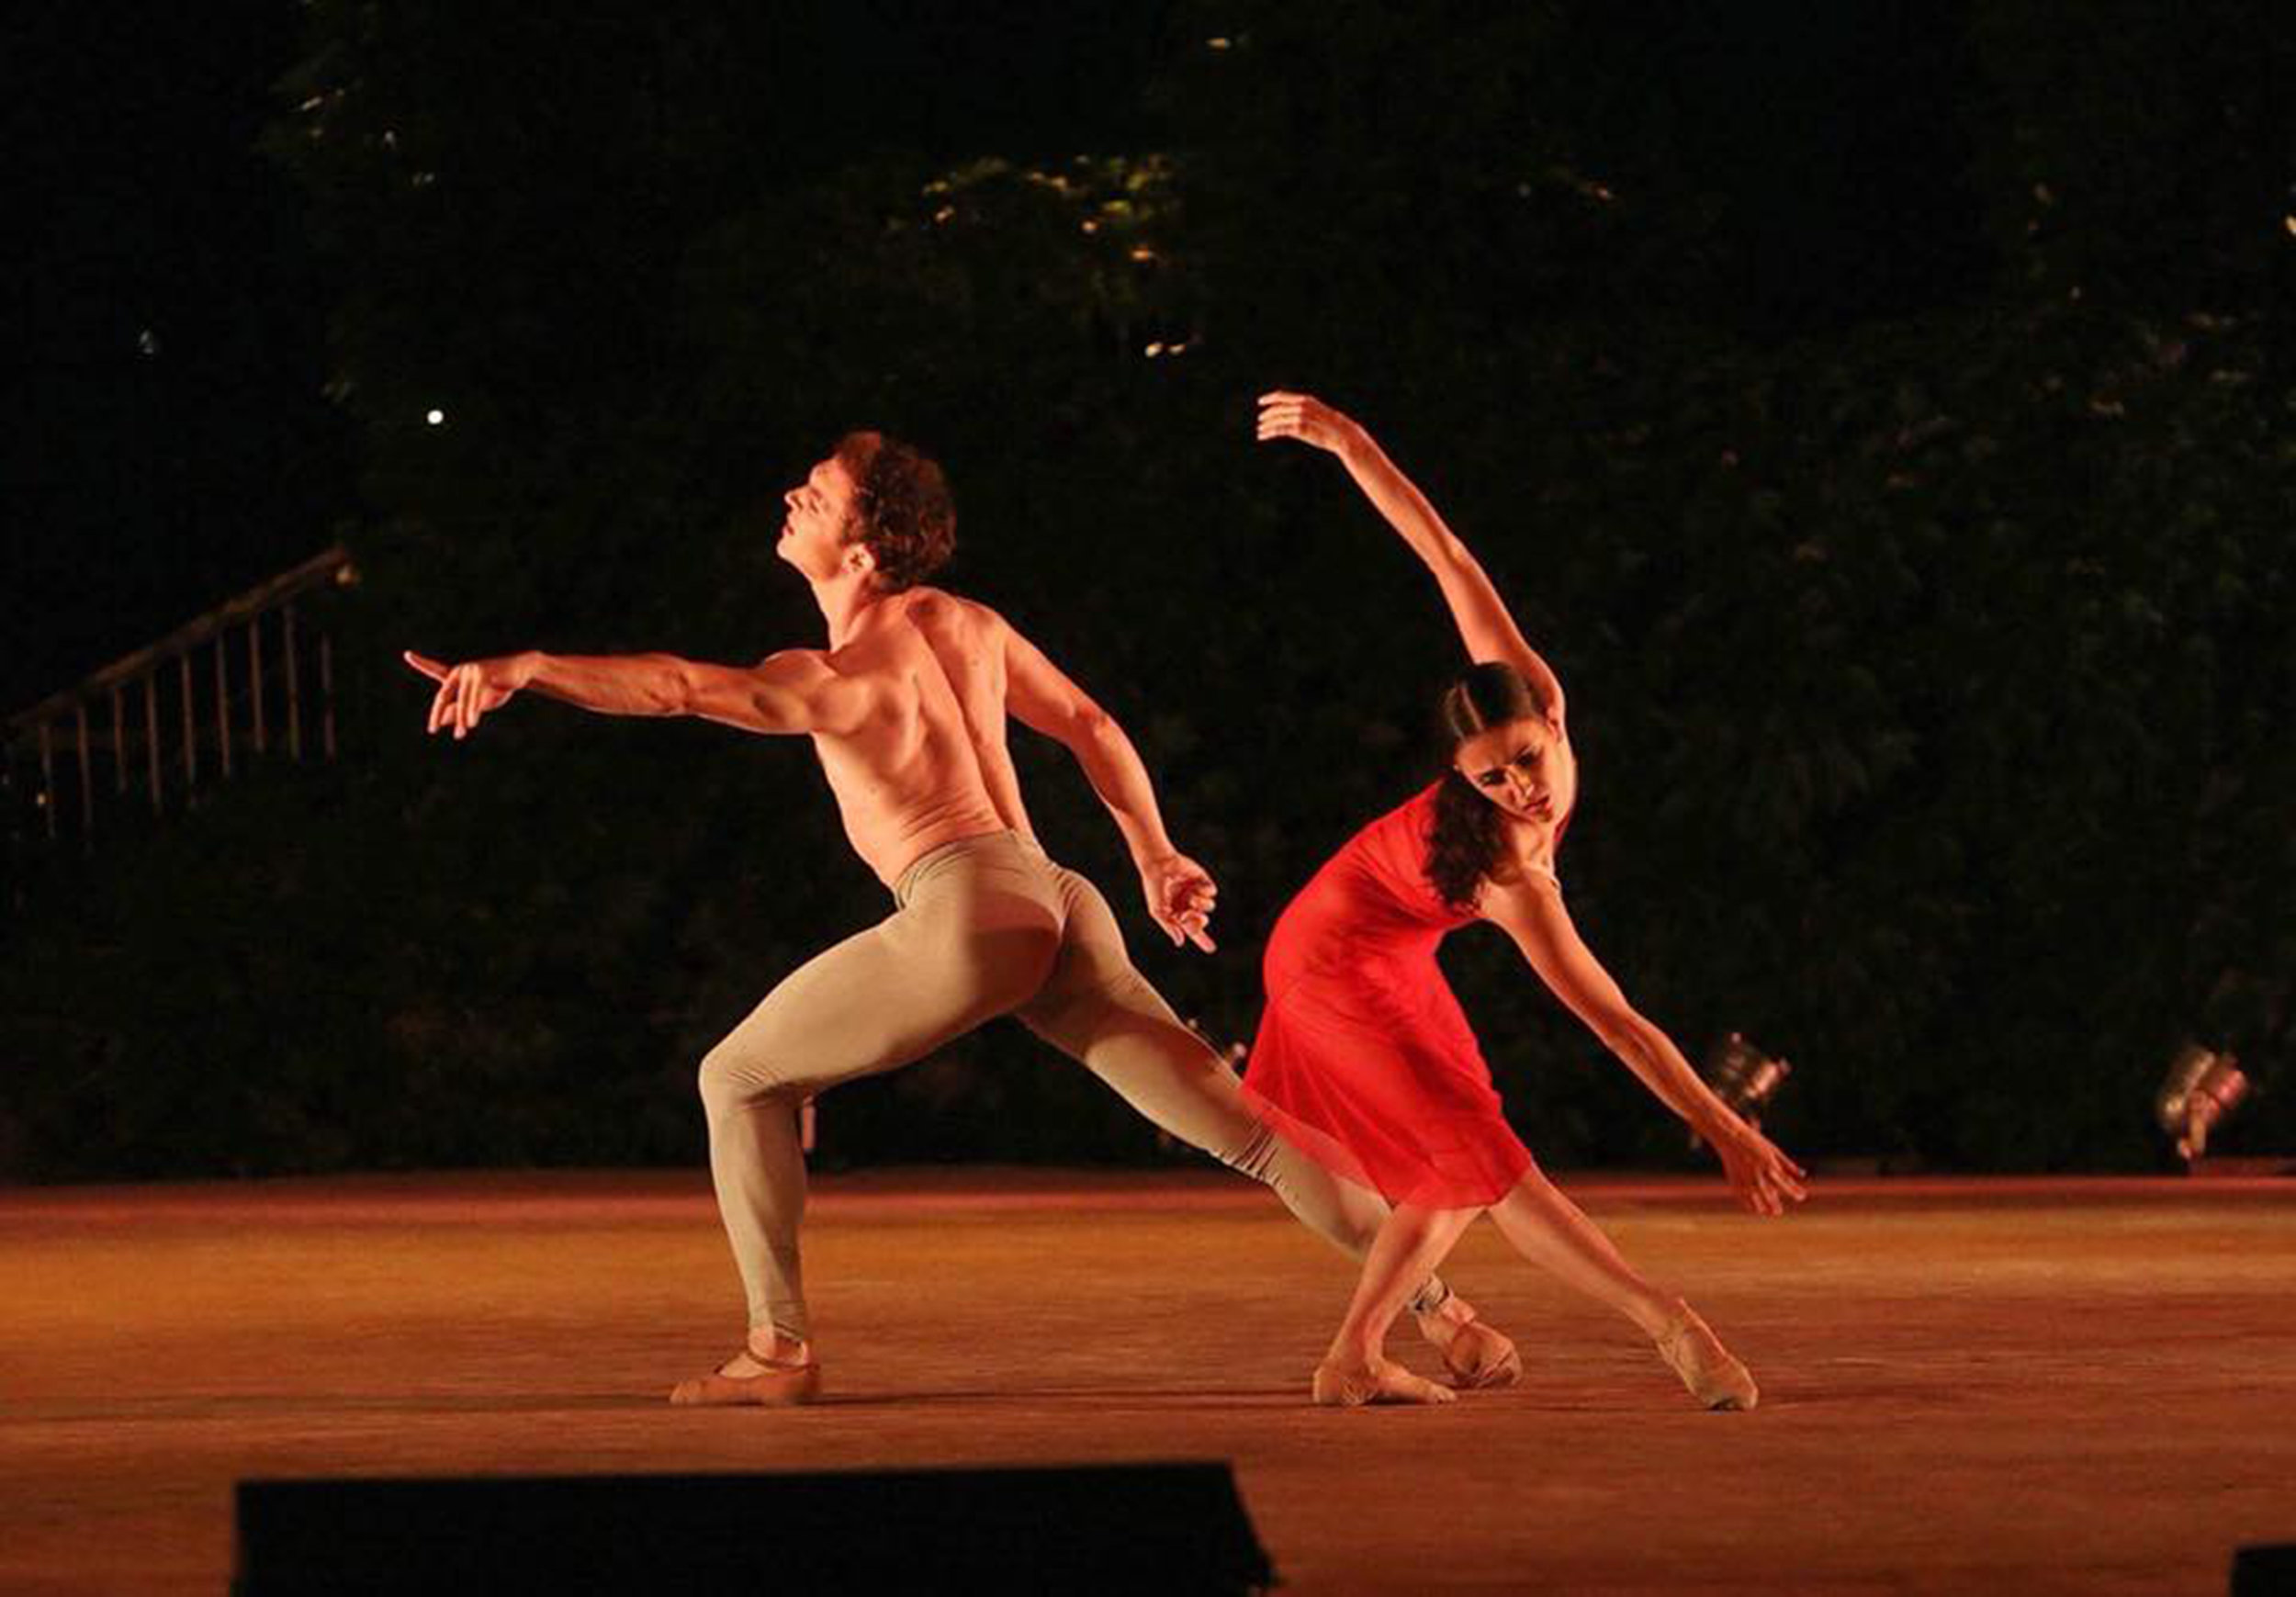 Katherine and Joseph dancing Simon Hoy's    The Distance Between    in their third-round performance in Varna. Photo by Andrey Stanko